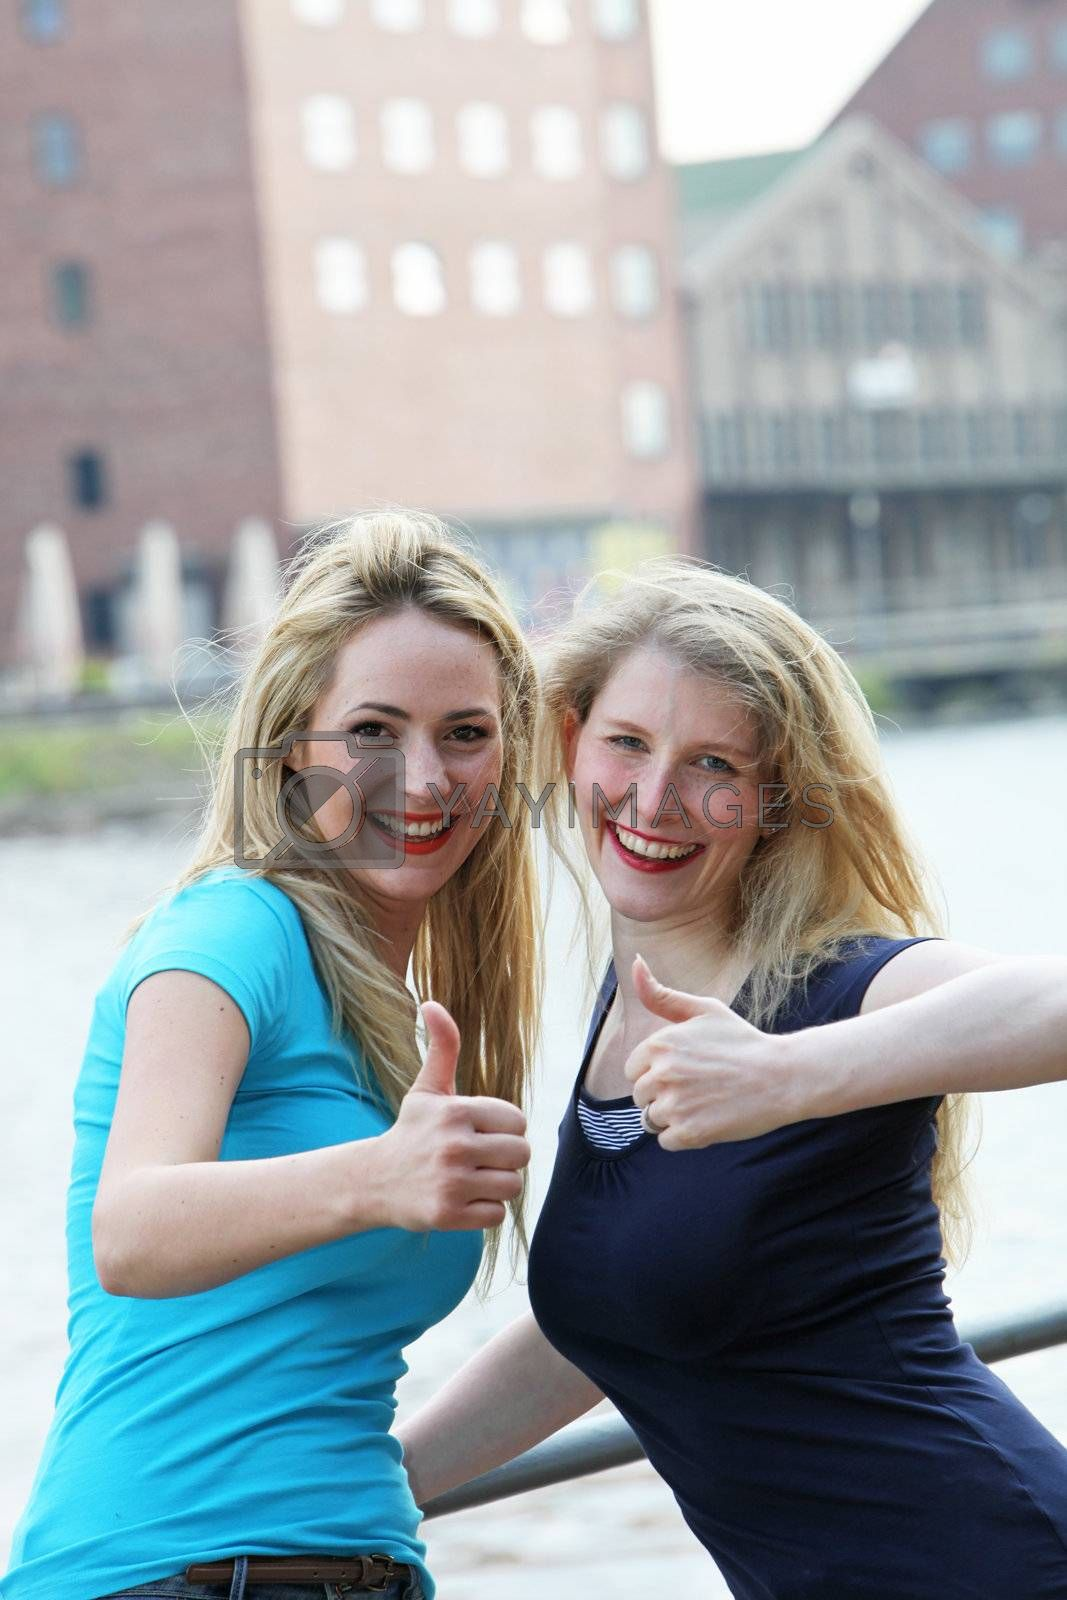 Happy female friends standing alonside an urban waterway giving an enthusiastic thumbs up of approval for their lifestyle Happy female friends standing alonside an urban waterway giving a thumbs up of approval for their lifestyle